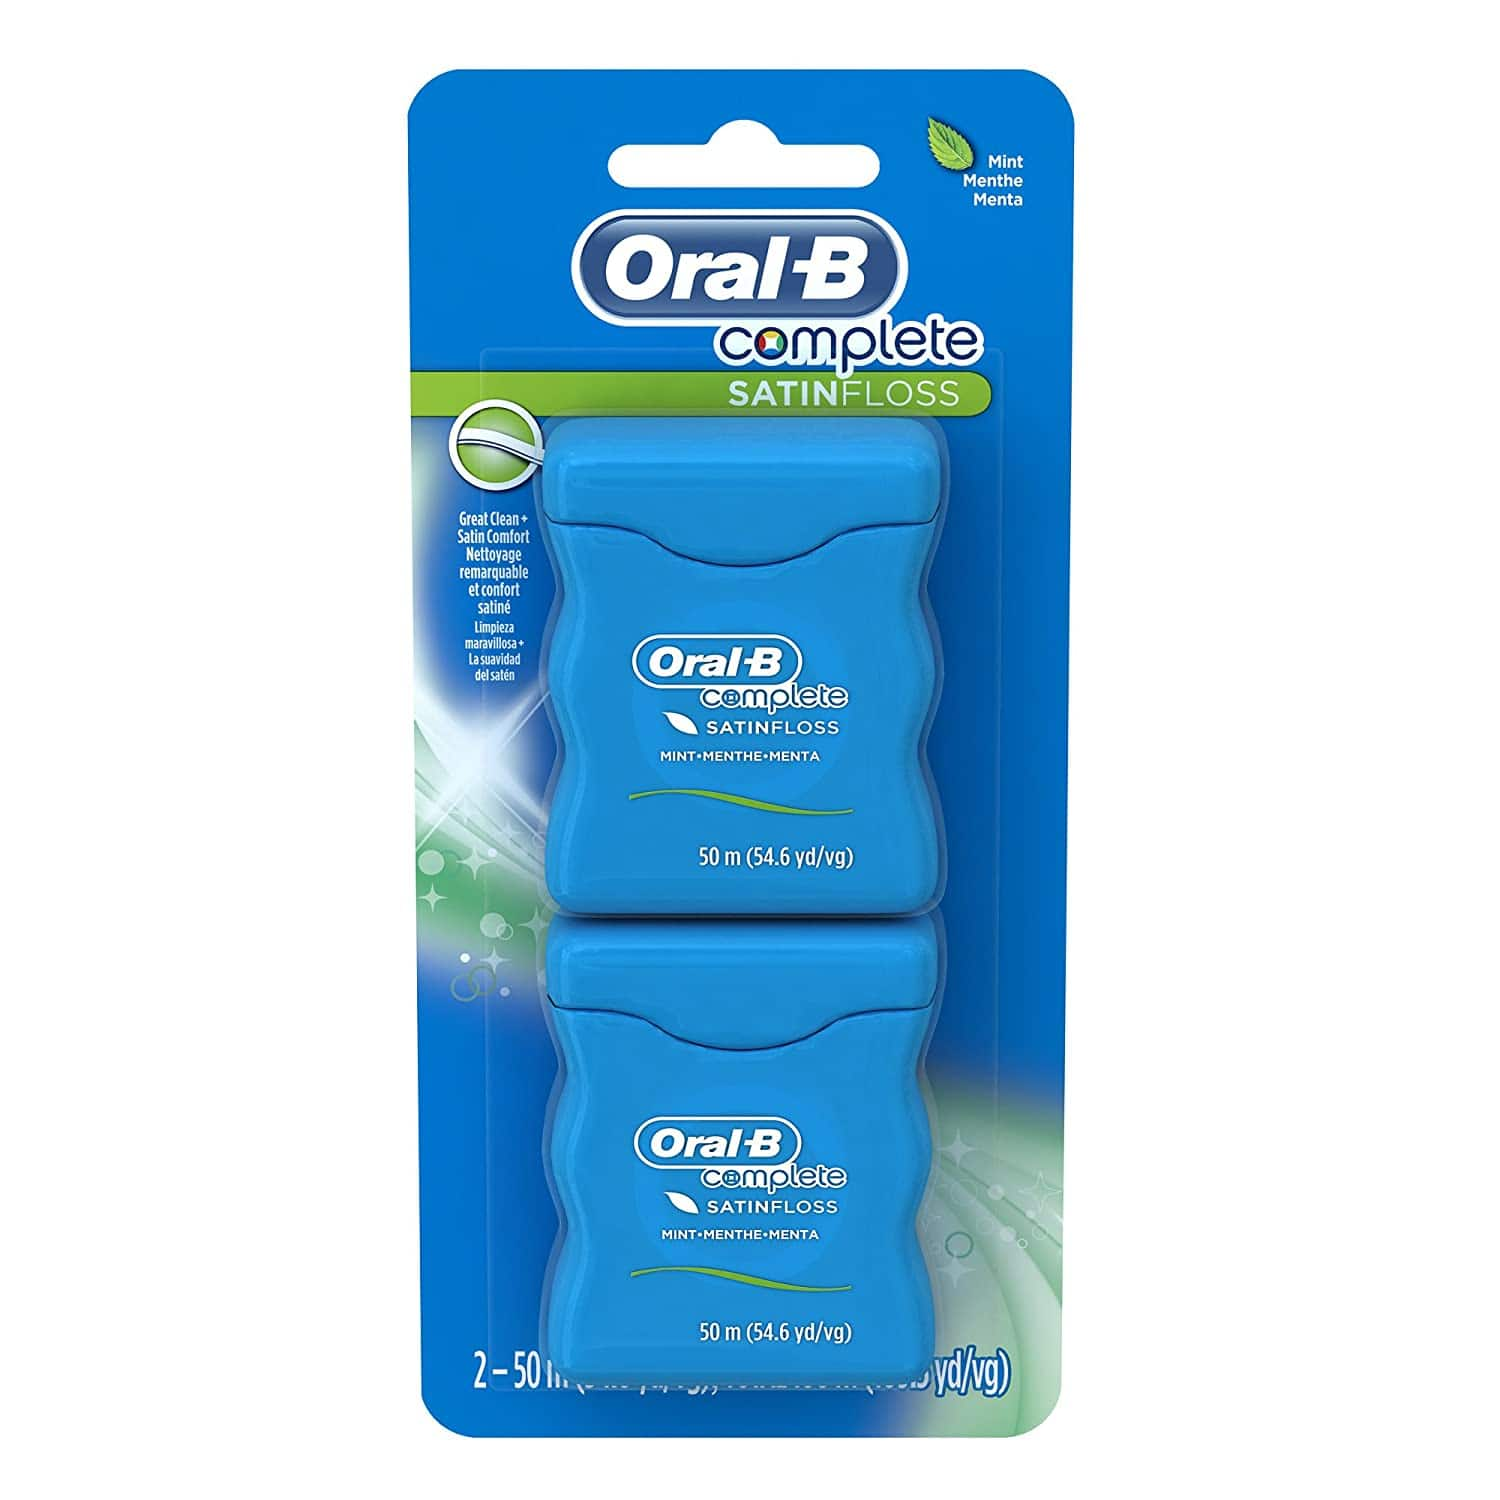 2-Ct 54.6-Yd Oral-B Complete SatinFloss Dental Floss $2.55 + Free Shipping w/ Prime or on $25+